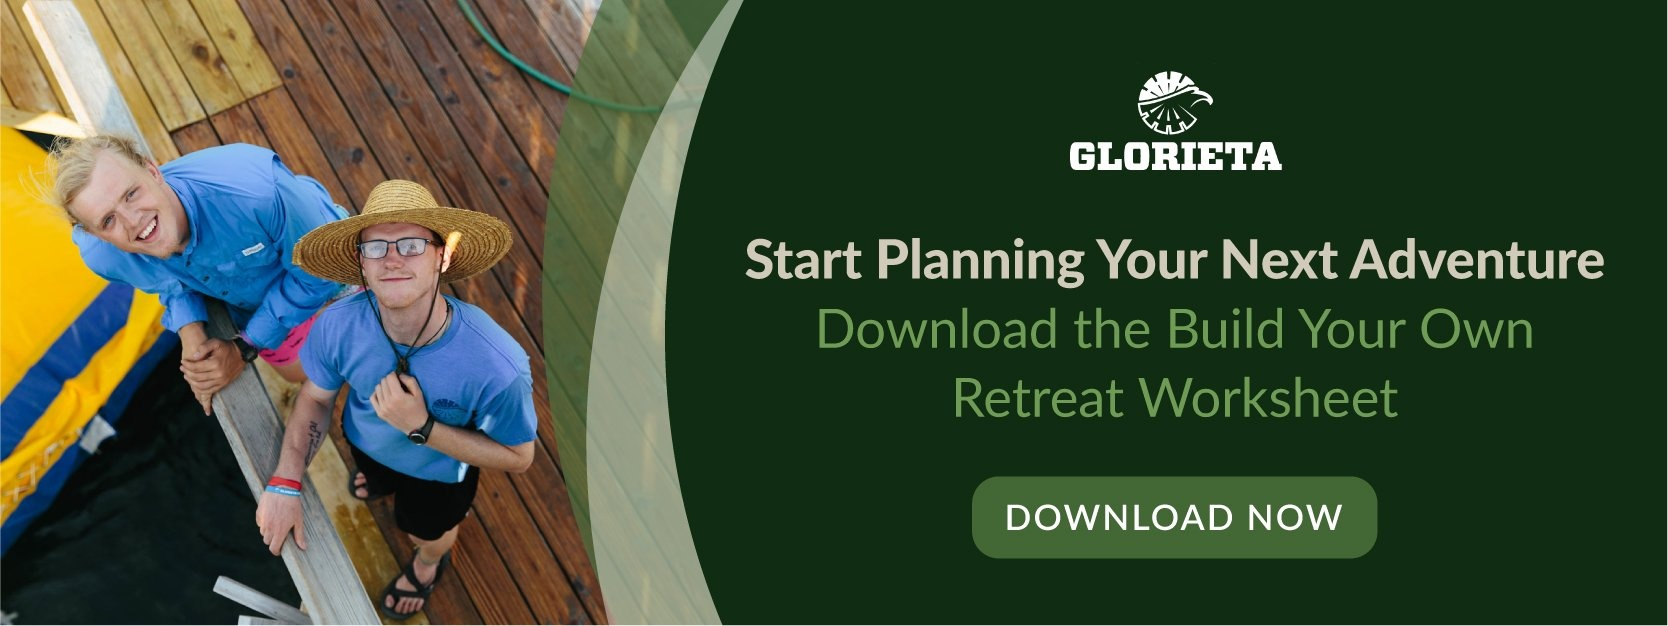 download-build-your-own-retreat-worksheet